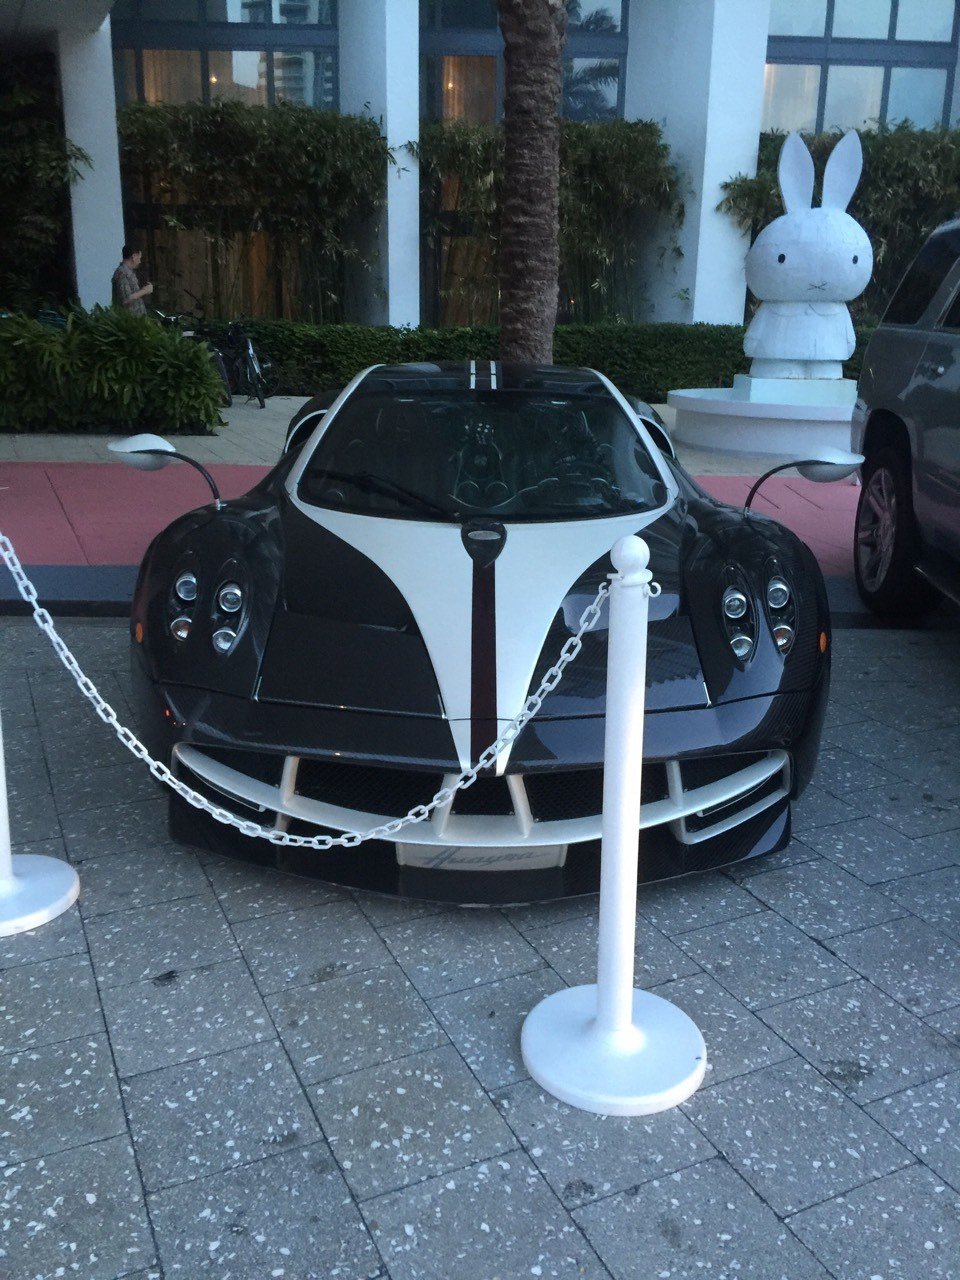 Pagani 1 of 1 if 1 spotted in Miami beach, FL. Purchased at over $17M. The king(owner) lives up in Connecticut.